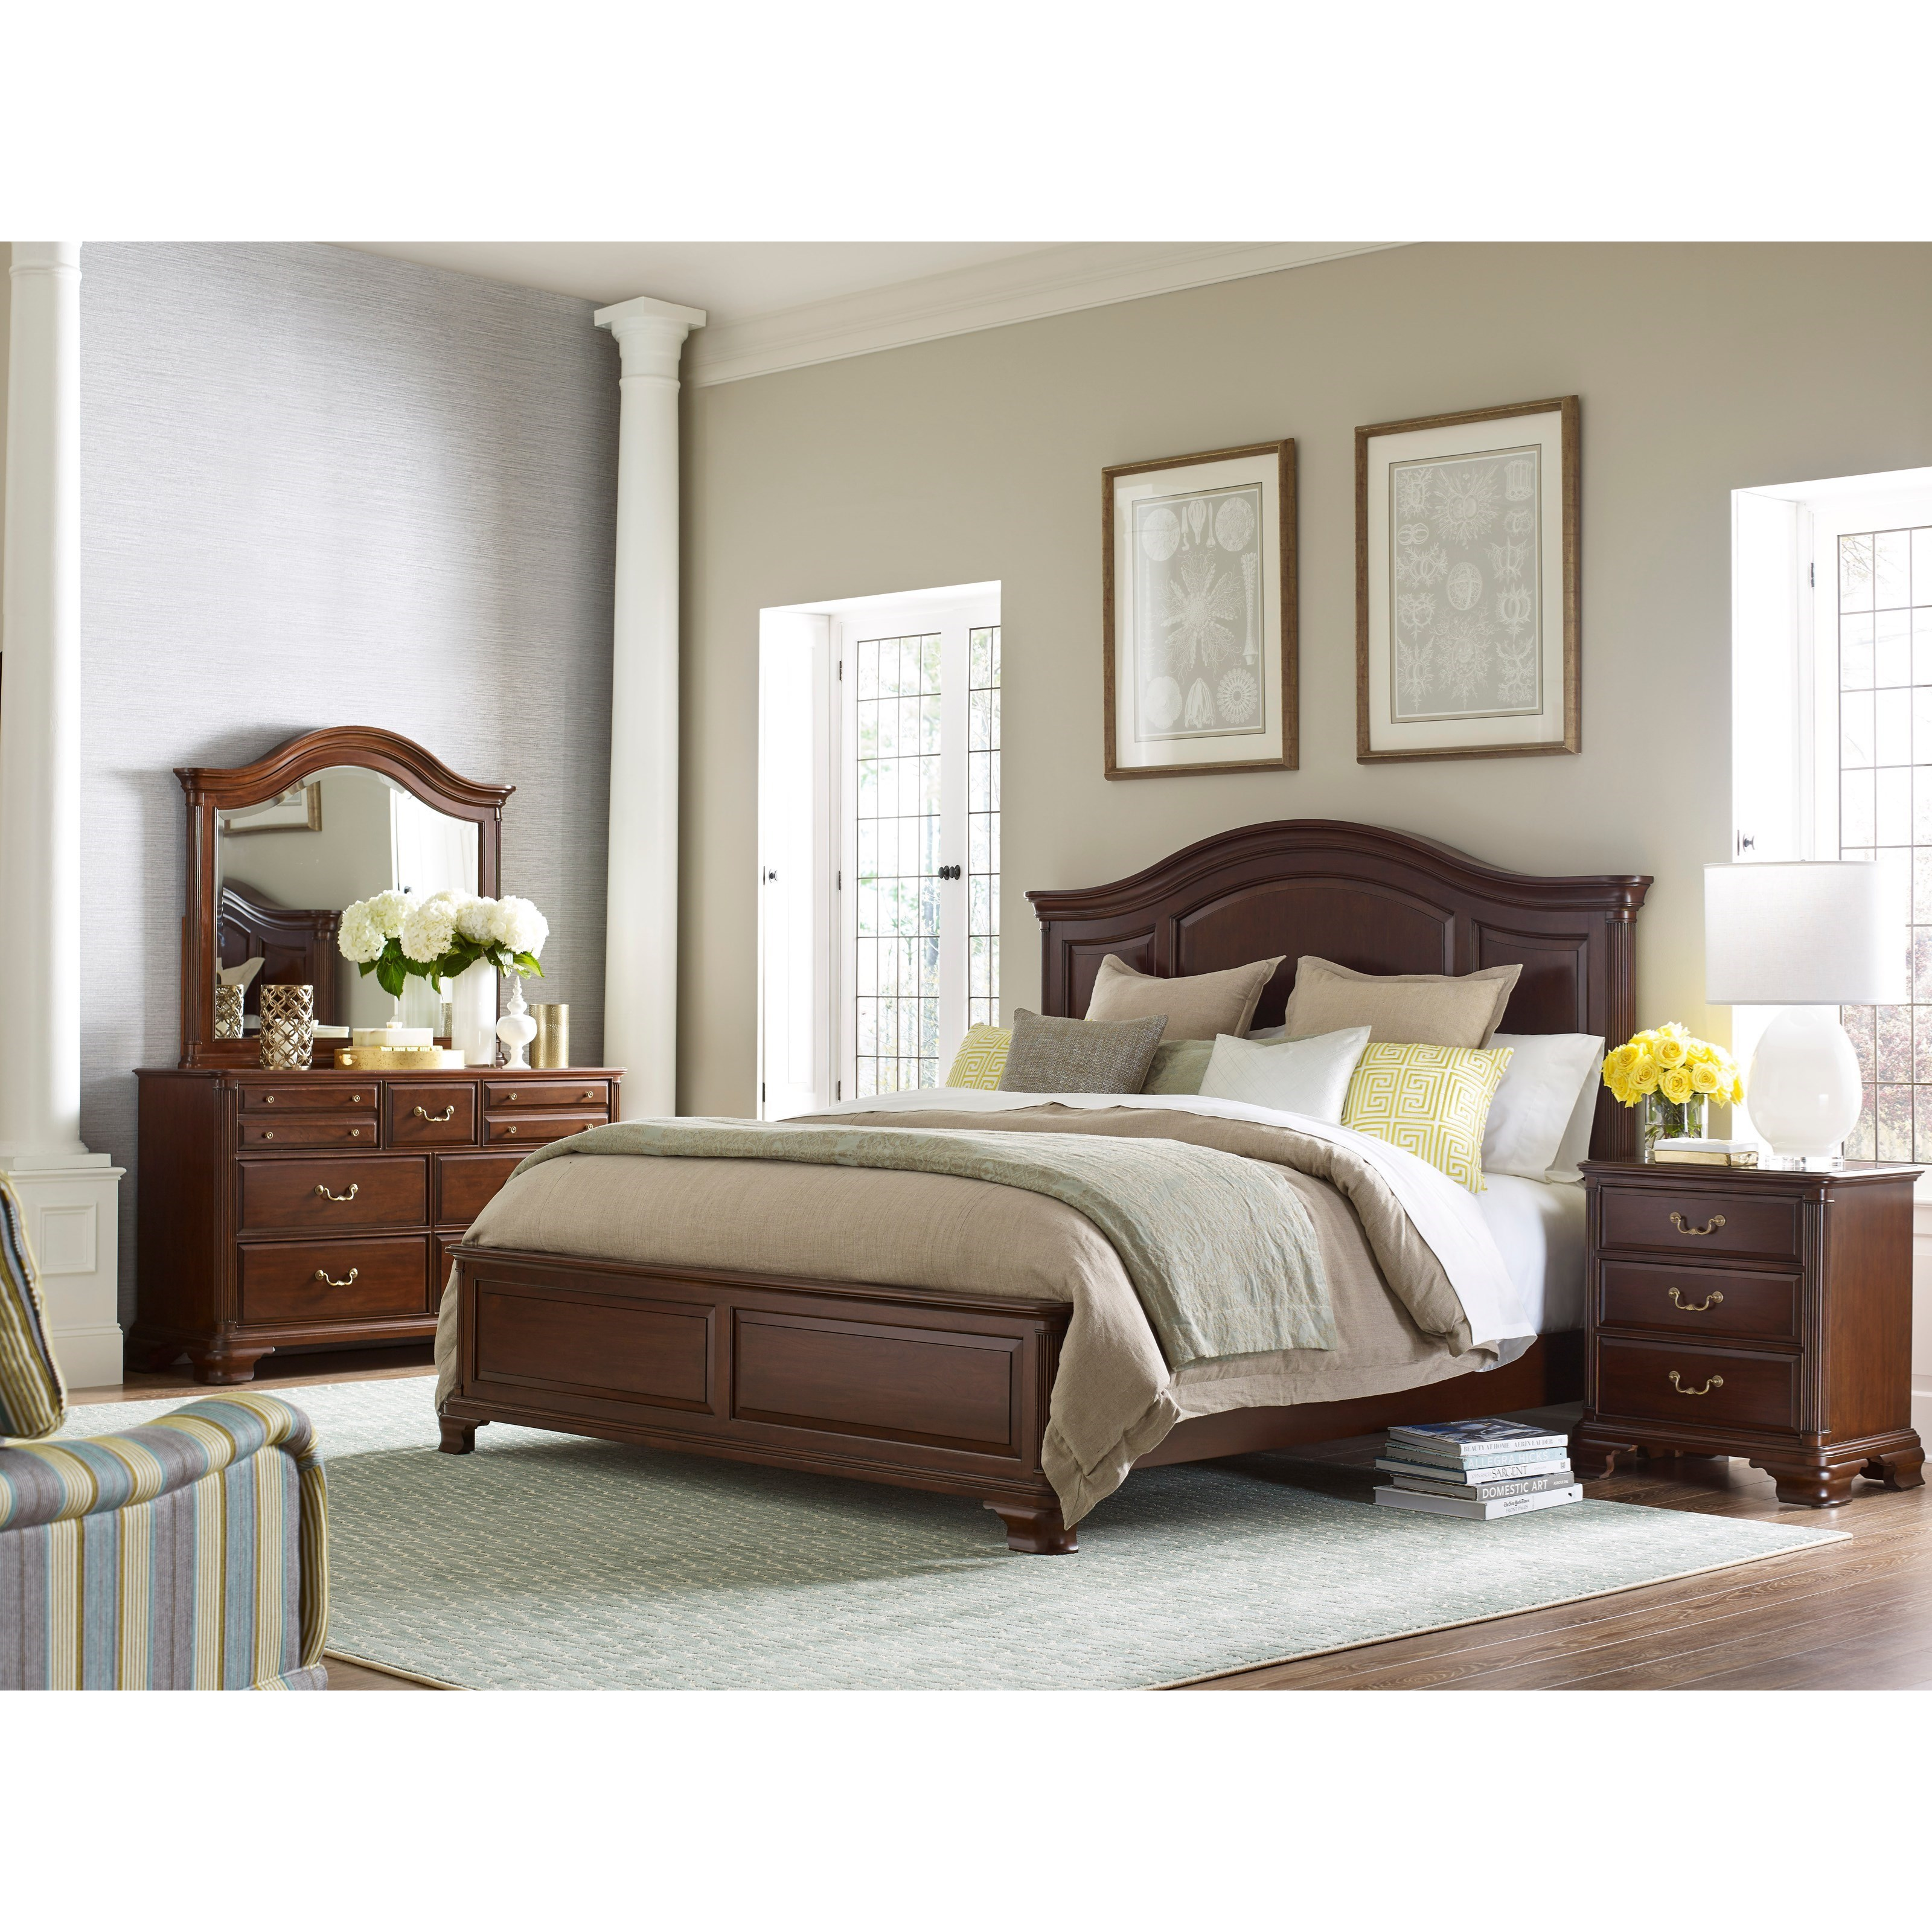 Kincaid furniture hadleigh queen bedroom group belfort for Bedroom furniture groups